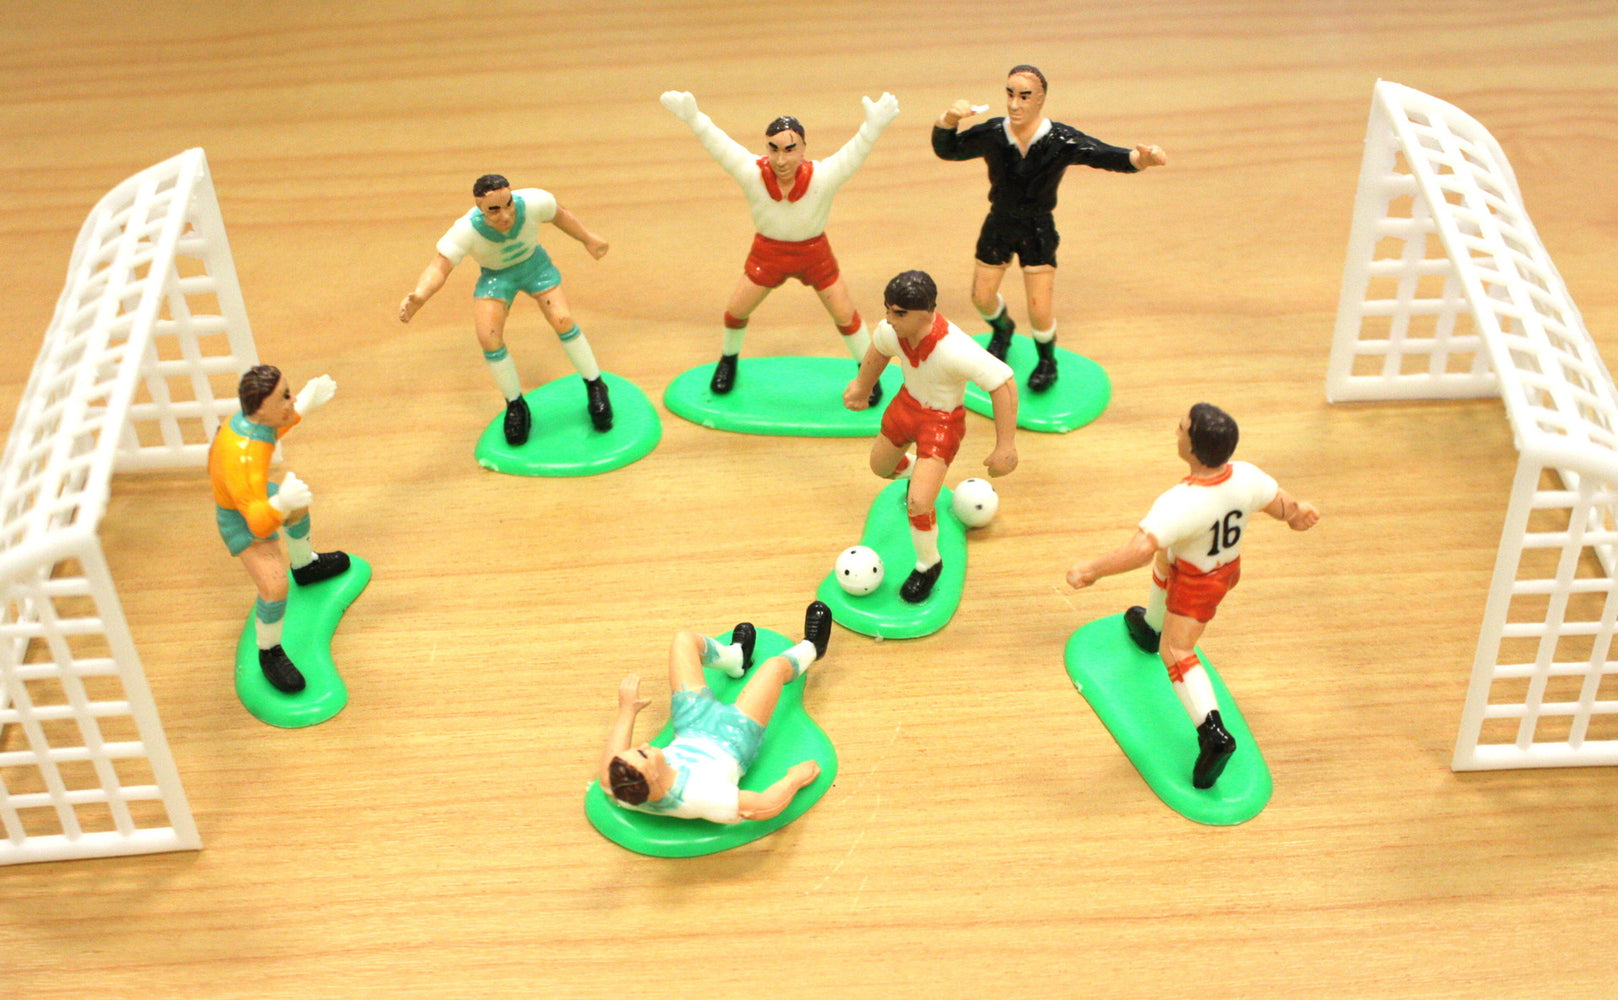 Football/Soccer Set , Figurine Set